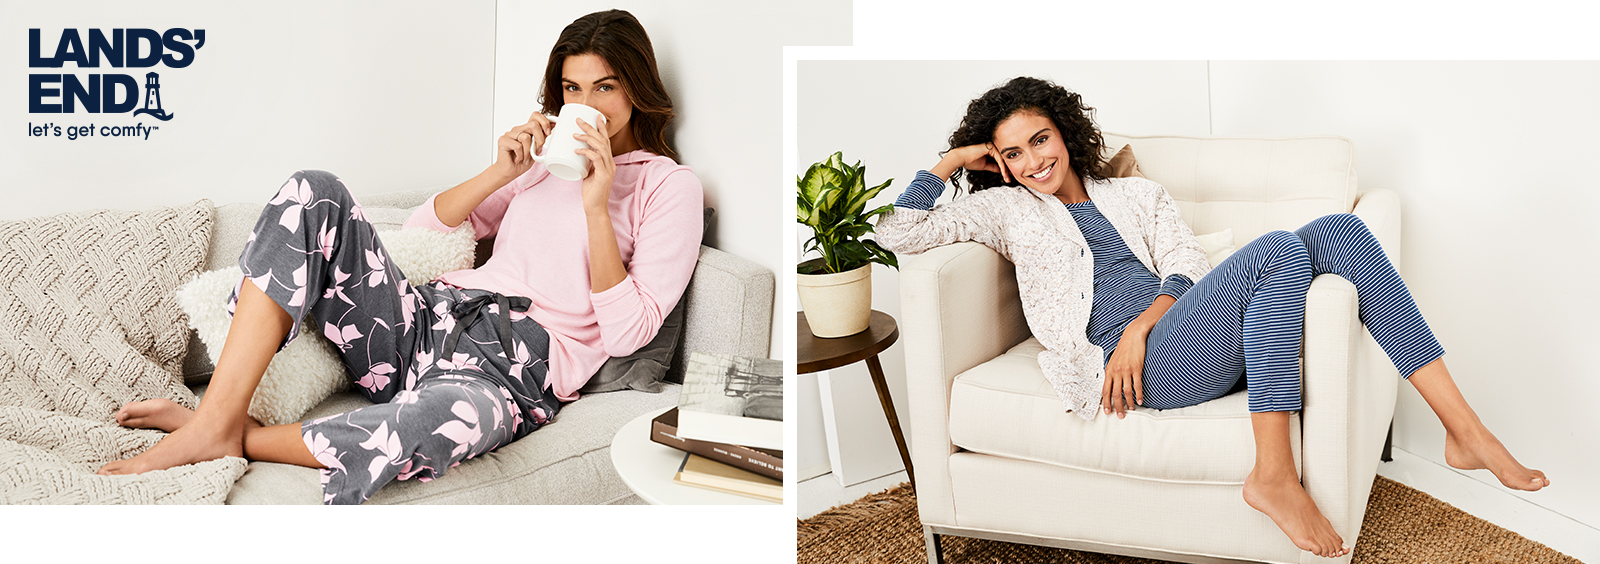 Why You Should Treat Yourself to Comfy Pajamas